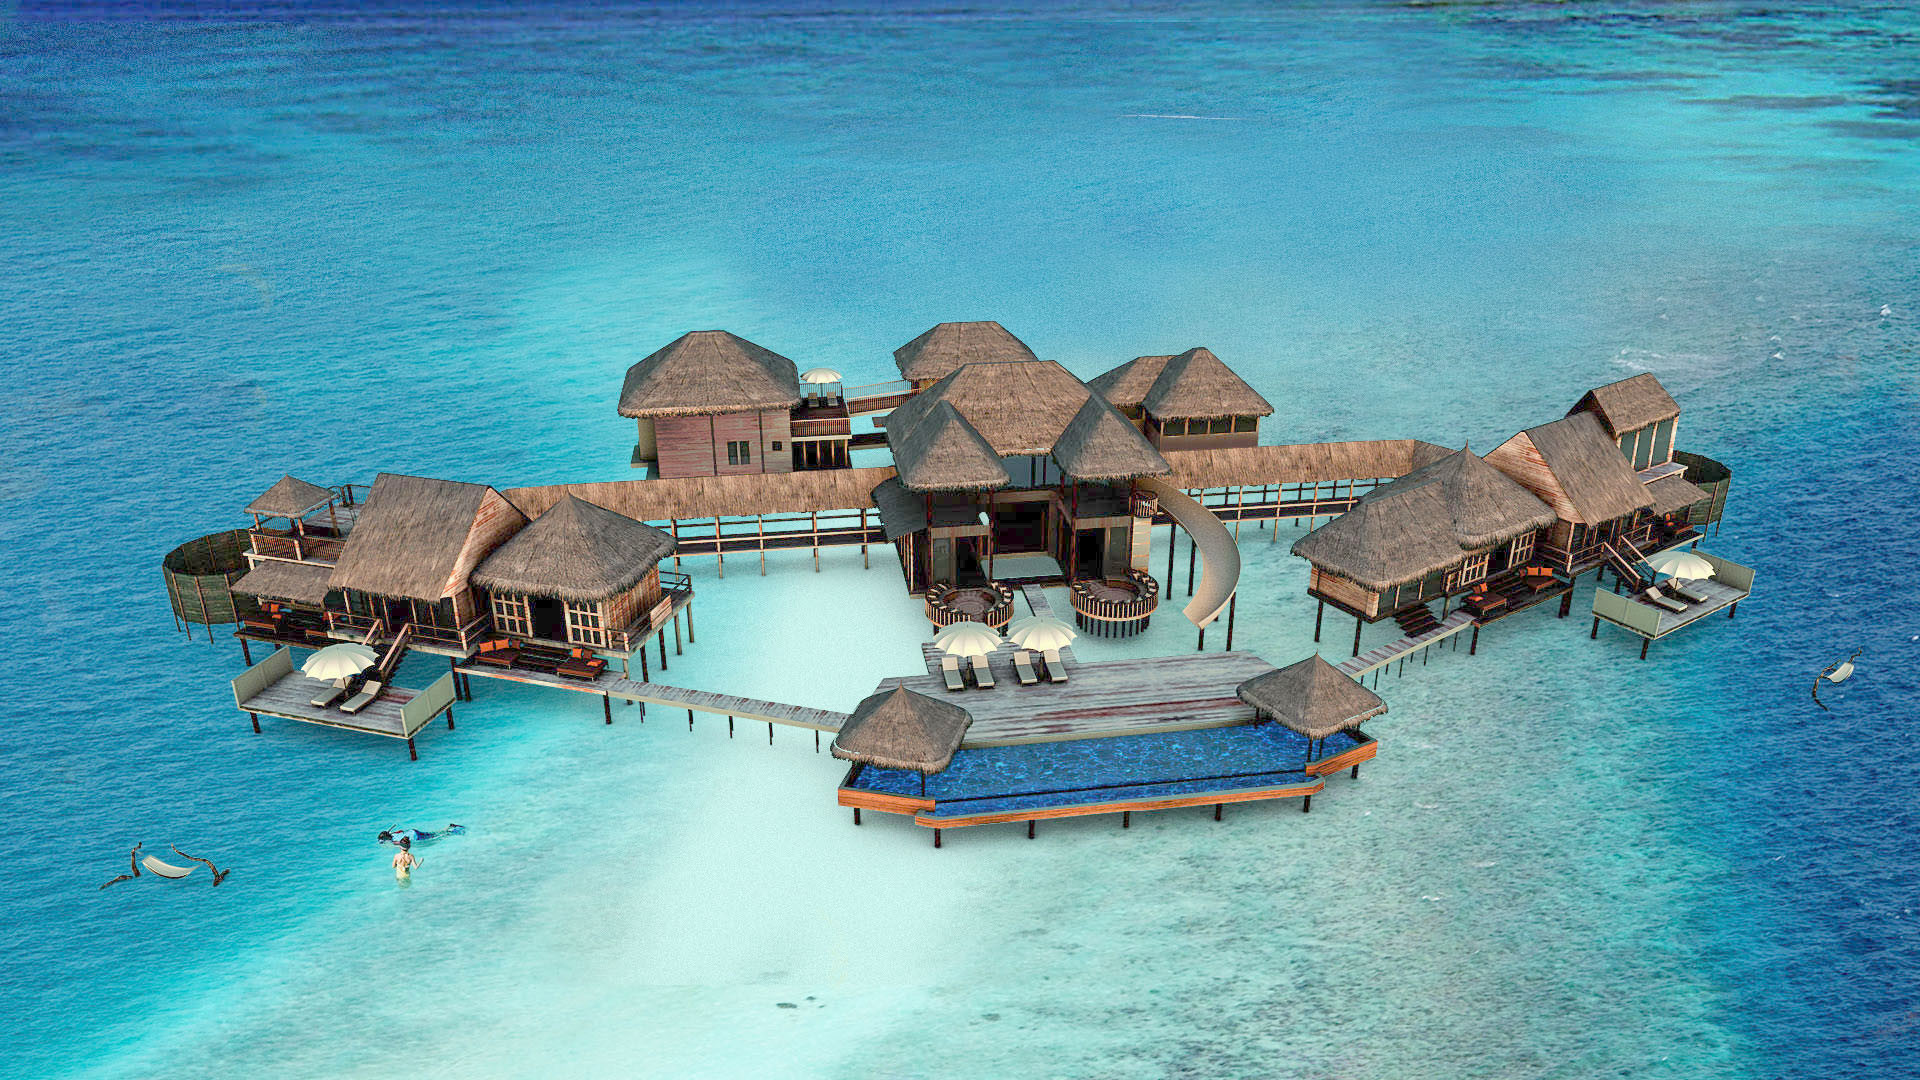 Gili Lankanfushi Maldives – Once in a Lifetime